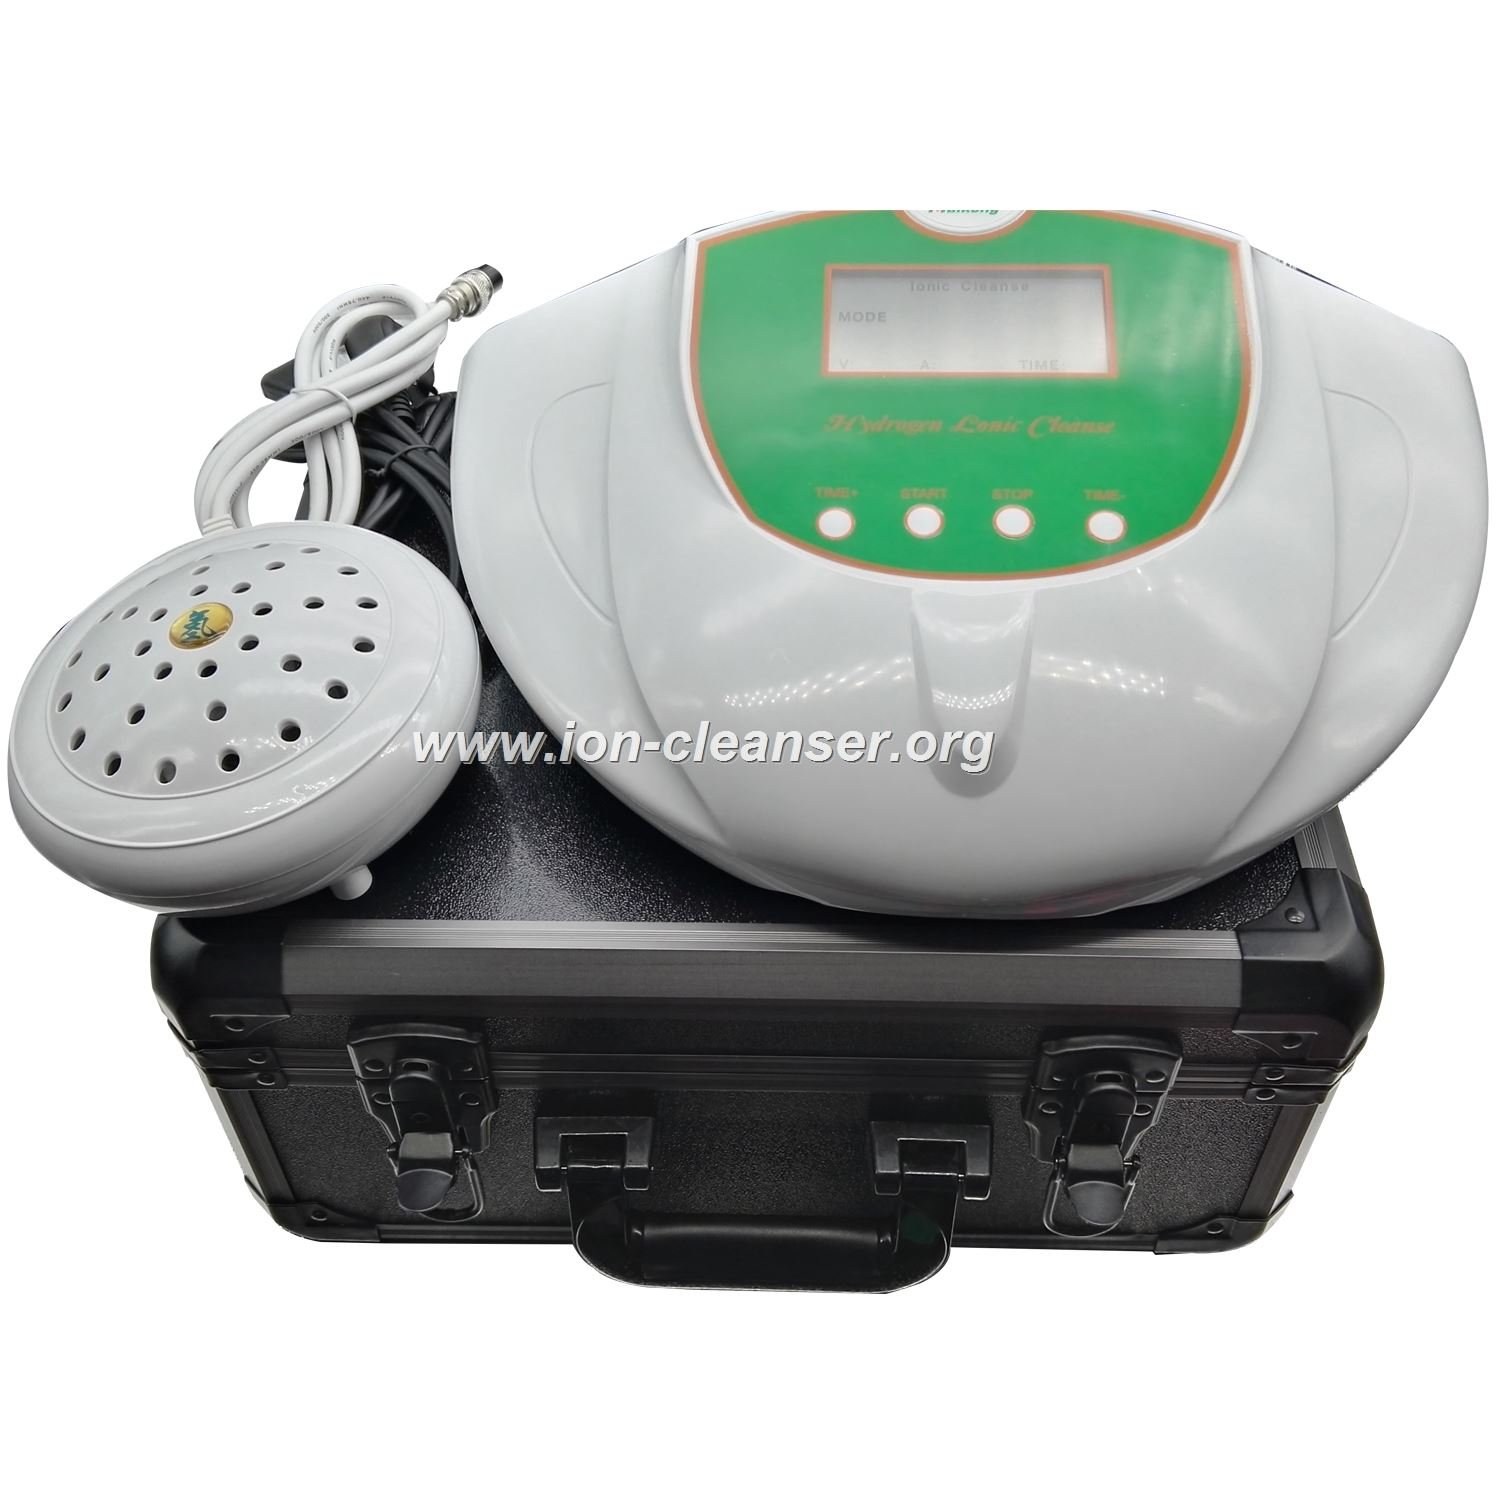 dtoxa cell machine price Here's a Quick Way Get It